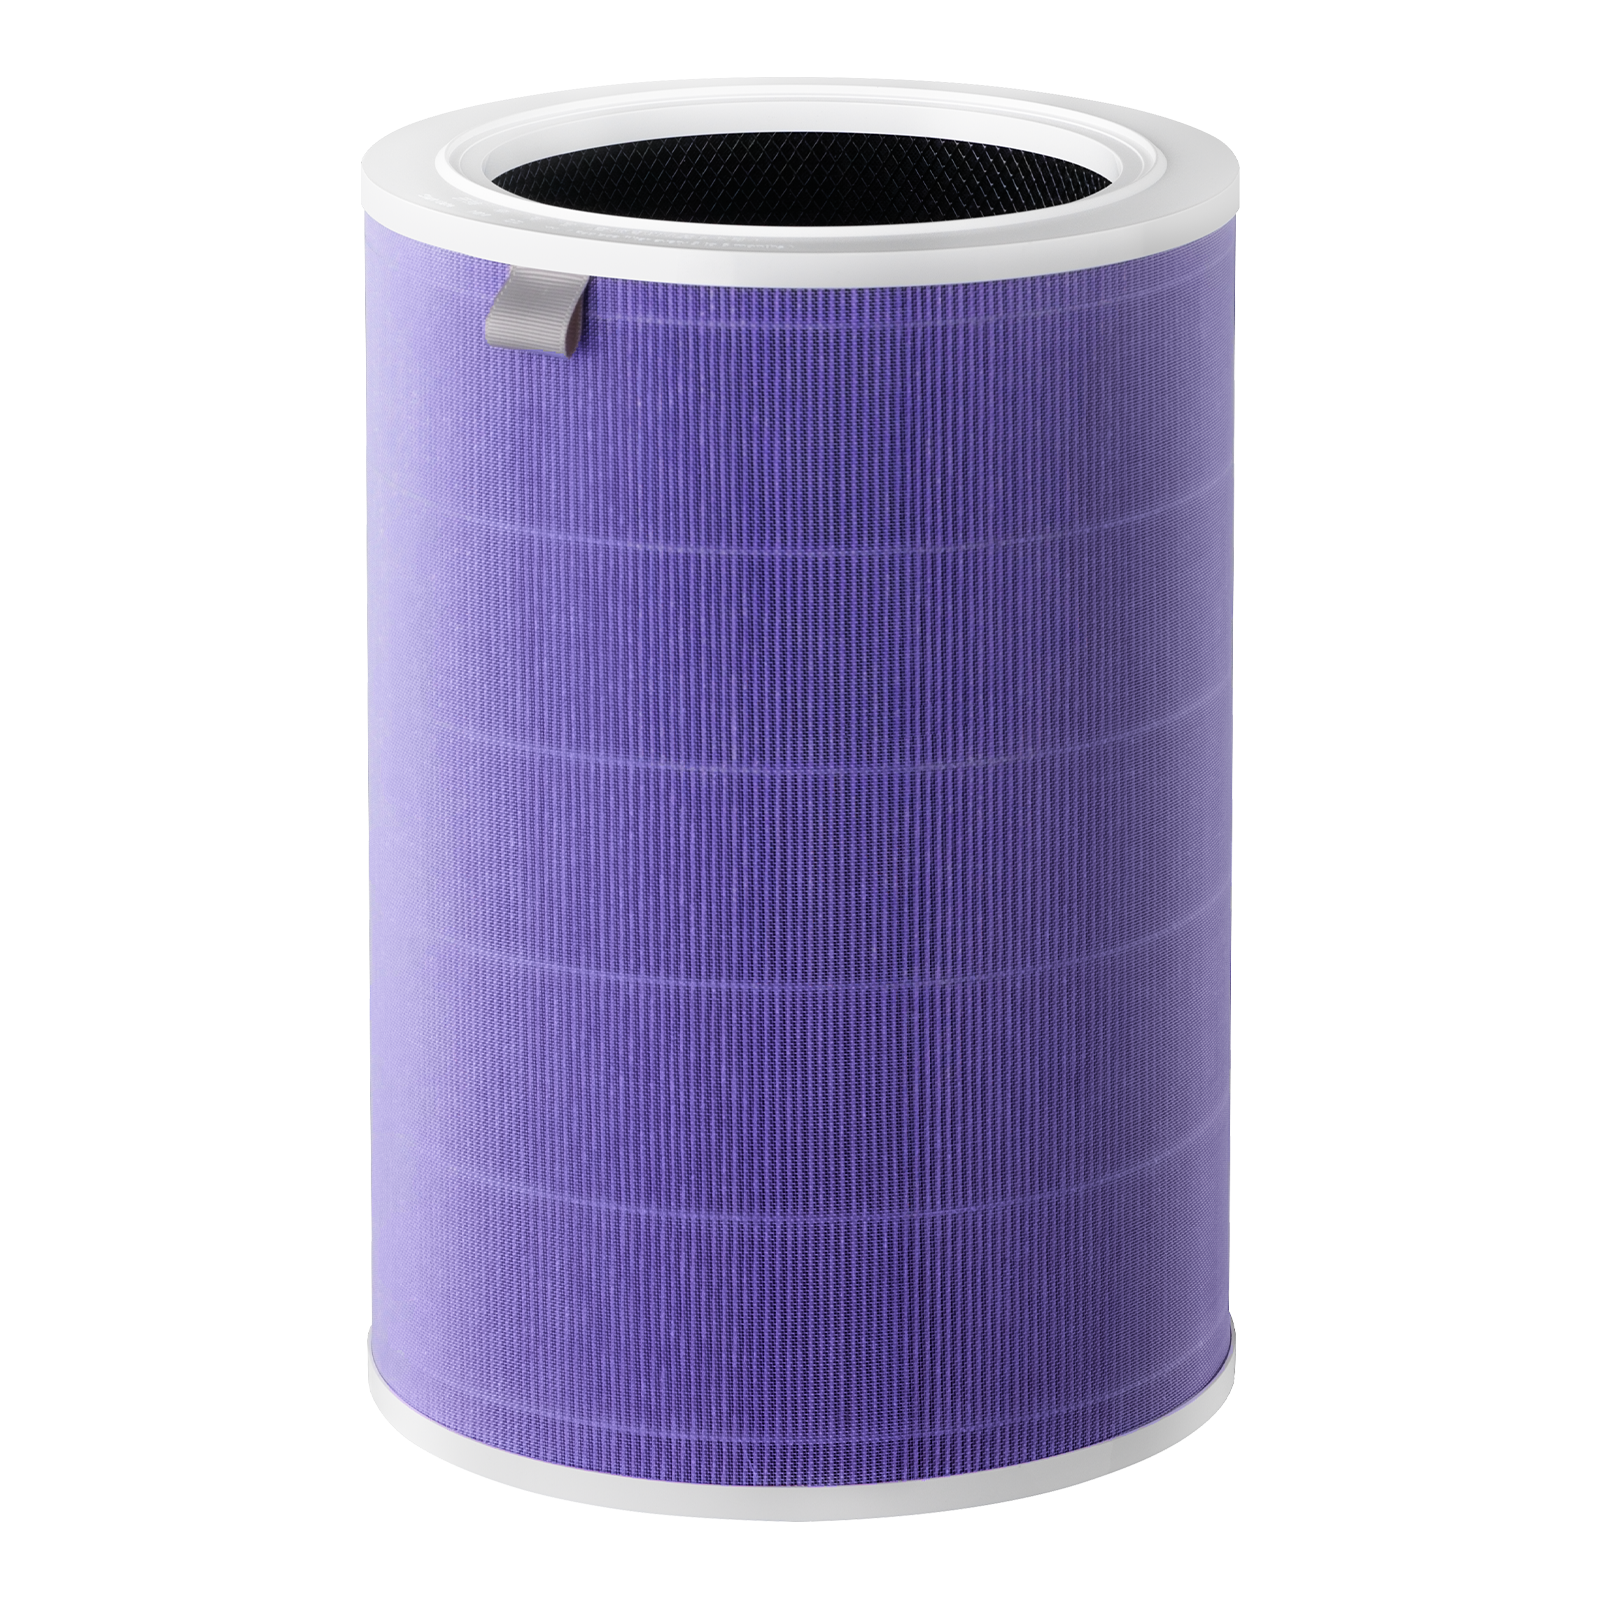 Mi Air Purifier Filter (Antibacterial)